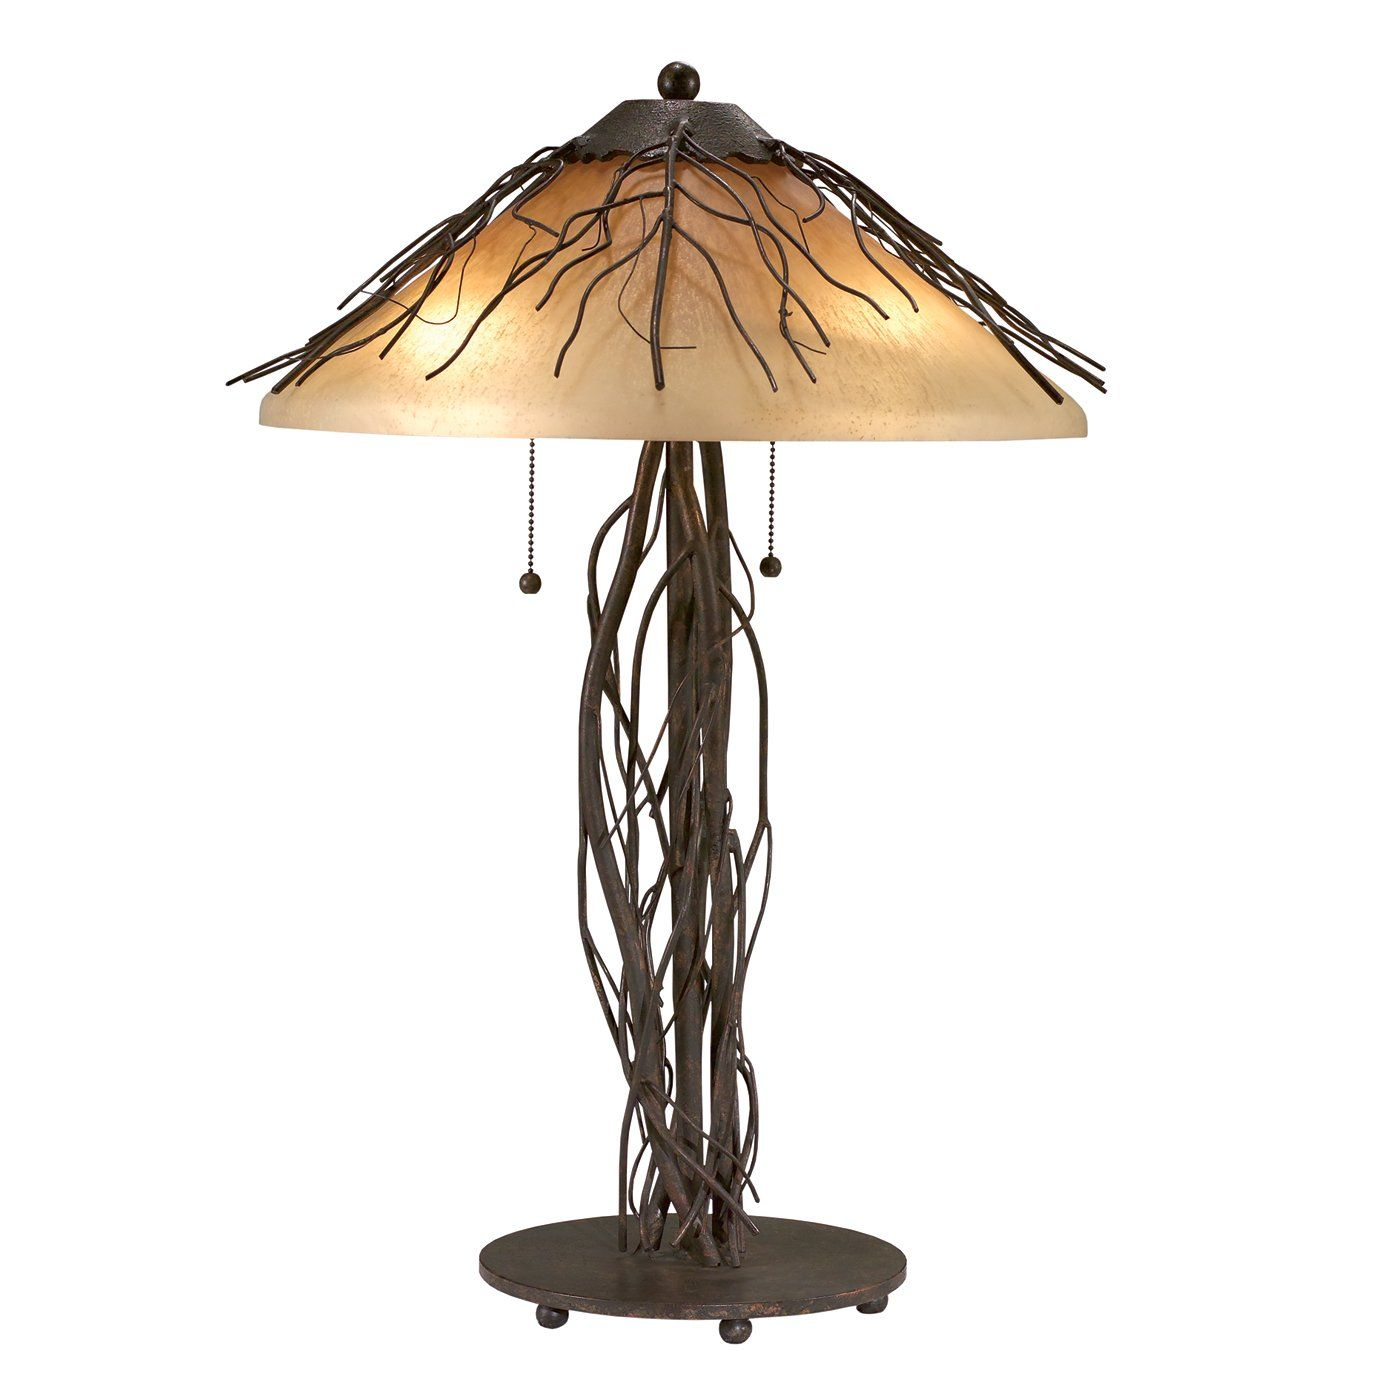 household lighting fixtures. Find This Pin And More On Household ~ Lighting Lamps By Claudeusg. Fixtures H